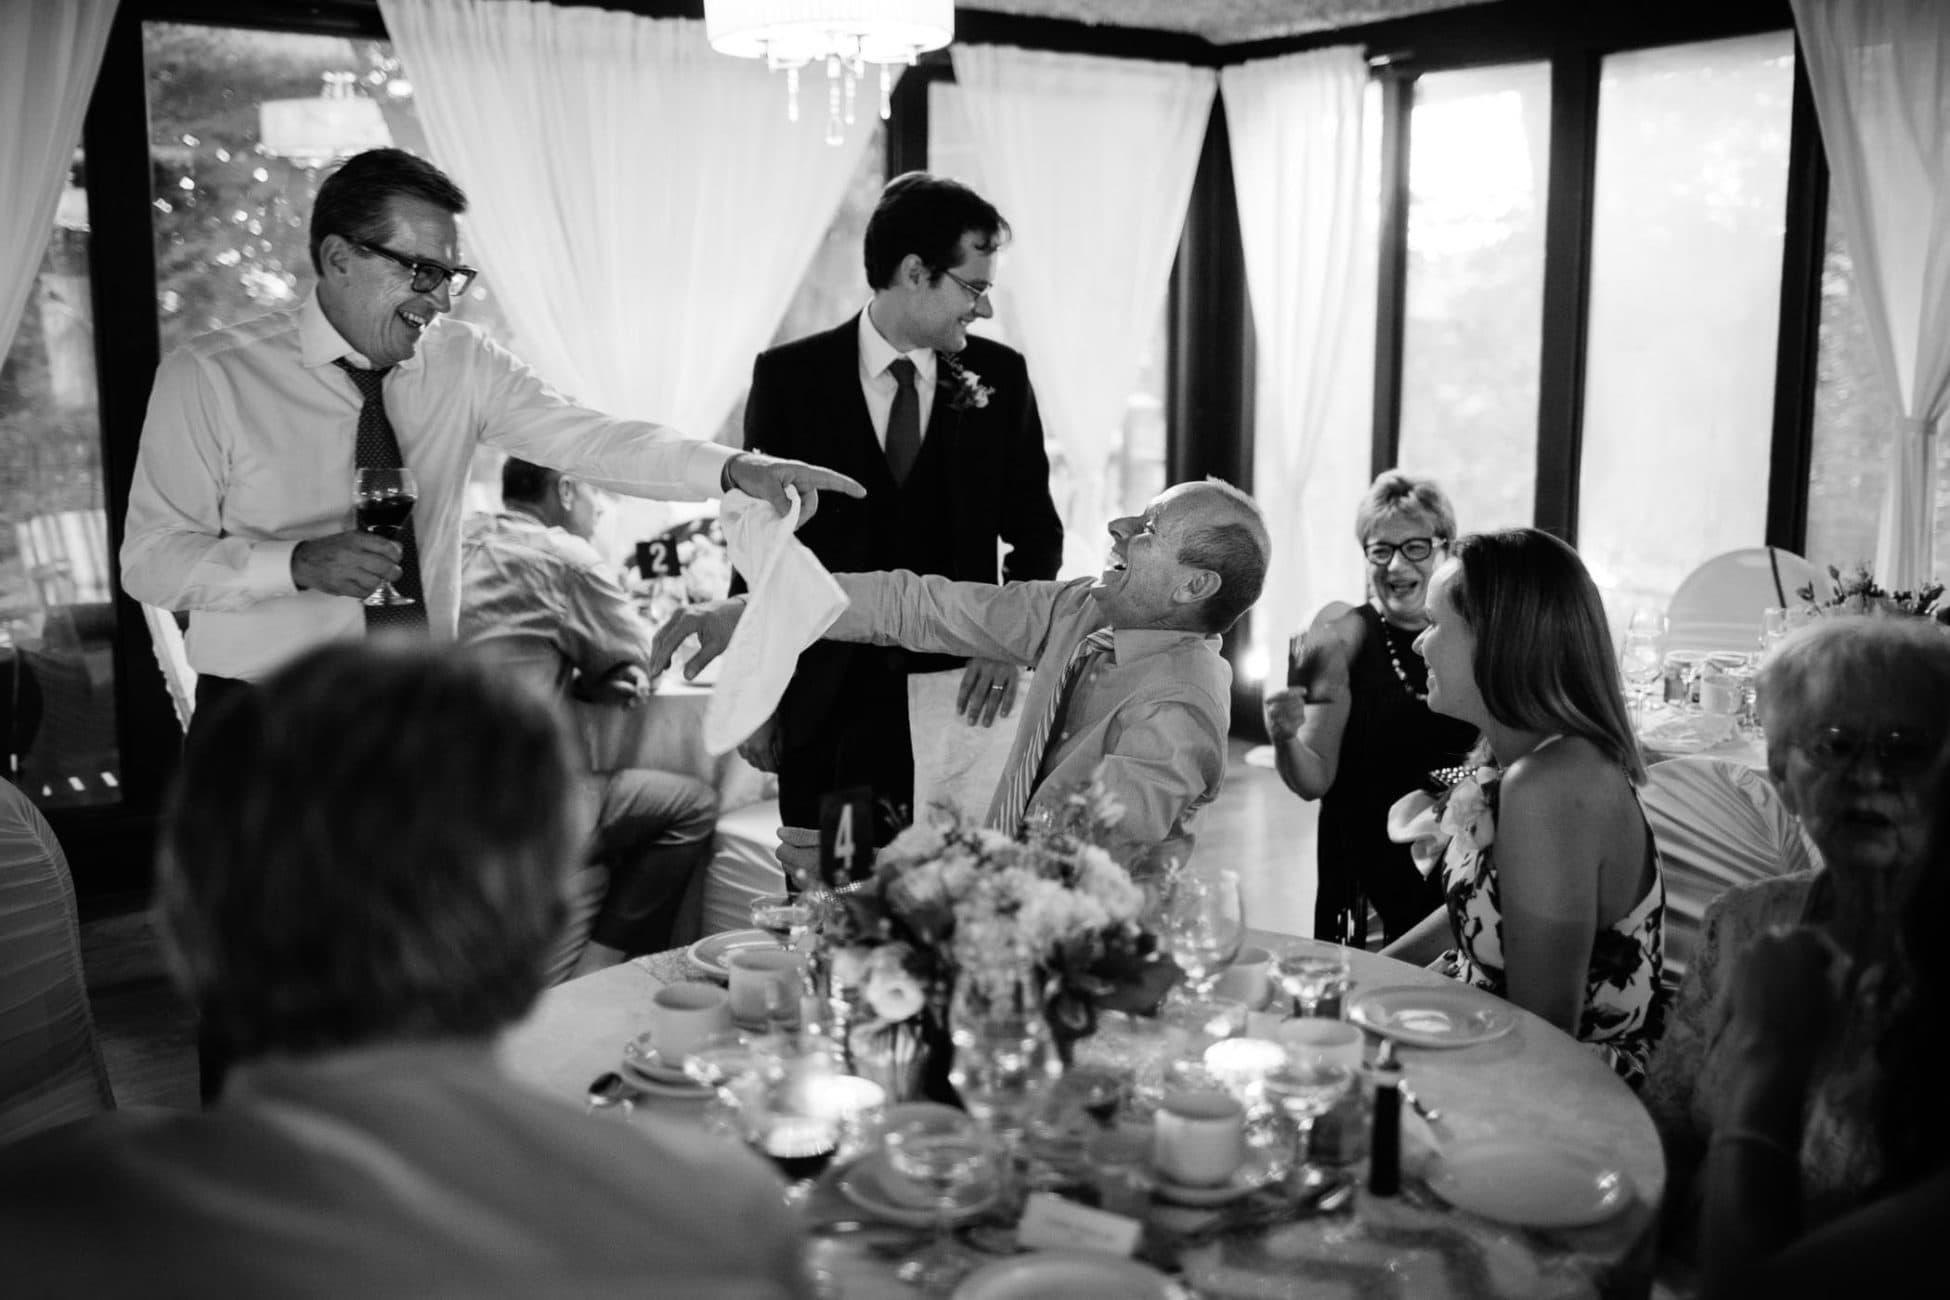 Two guests pointing and laughing at each other during wedding reception at Fantasy Farm in Toronto wedding photography by Pavel Kounine.